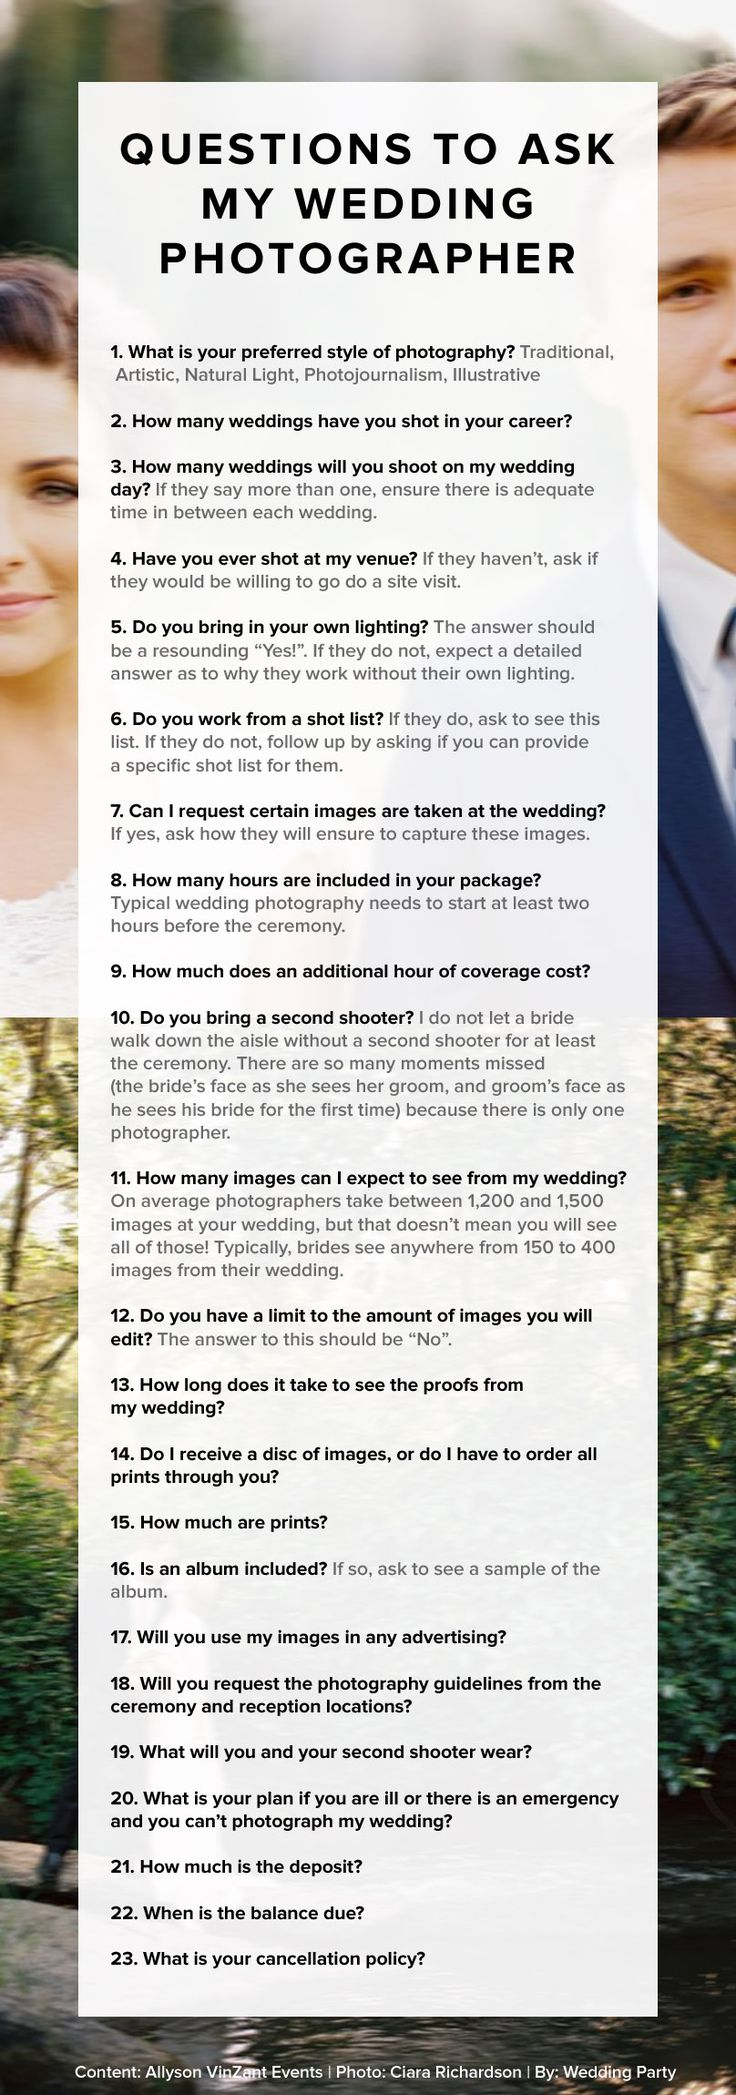 Questions to ask your wedding photographer! Great #wedding #advice. Pin now, read later. @Bailey Francine Searcy @Katlyn Lovett Holcomb